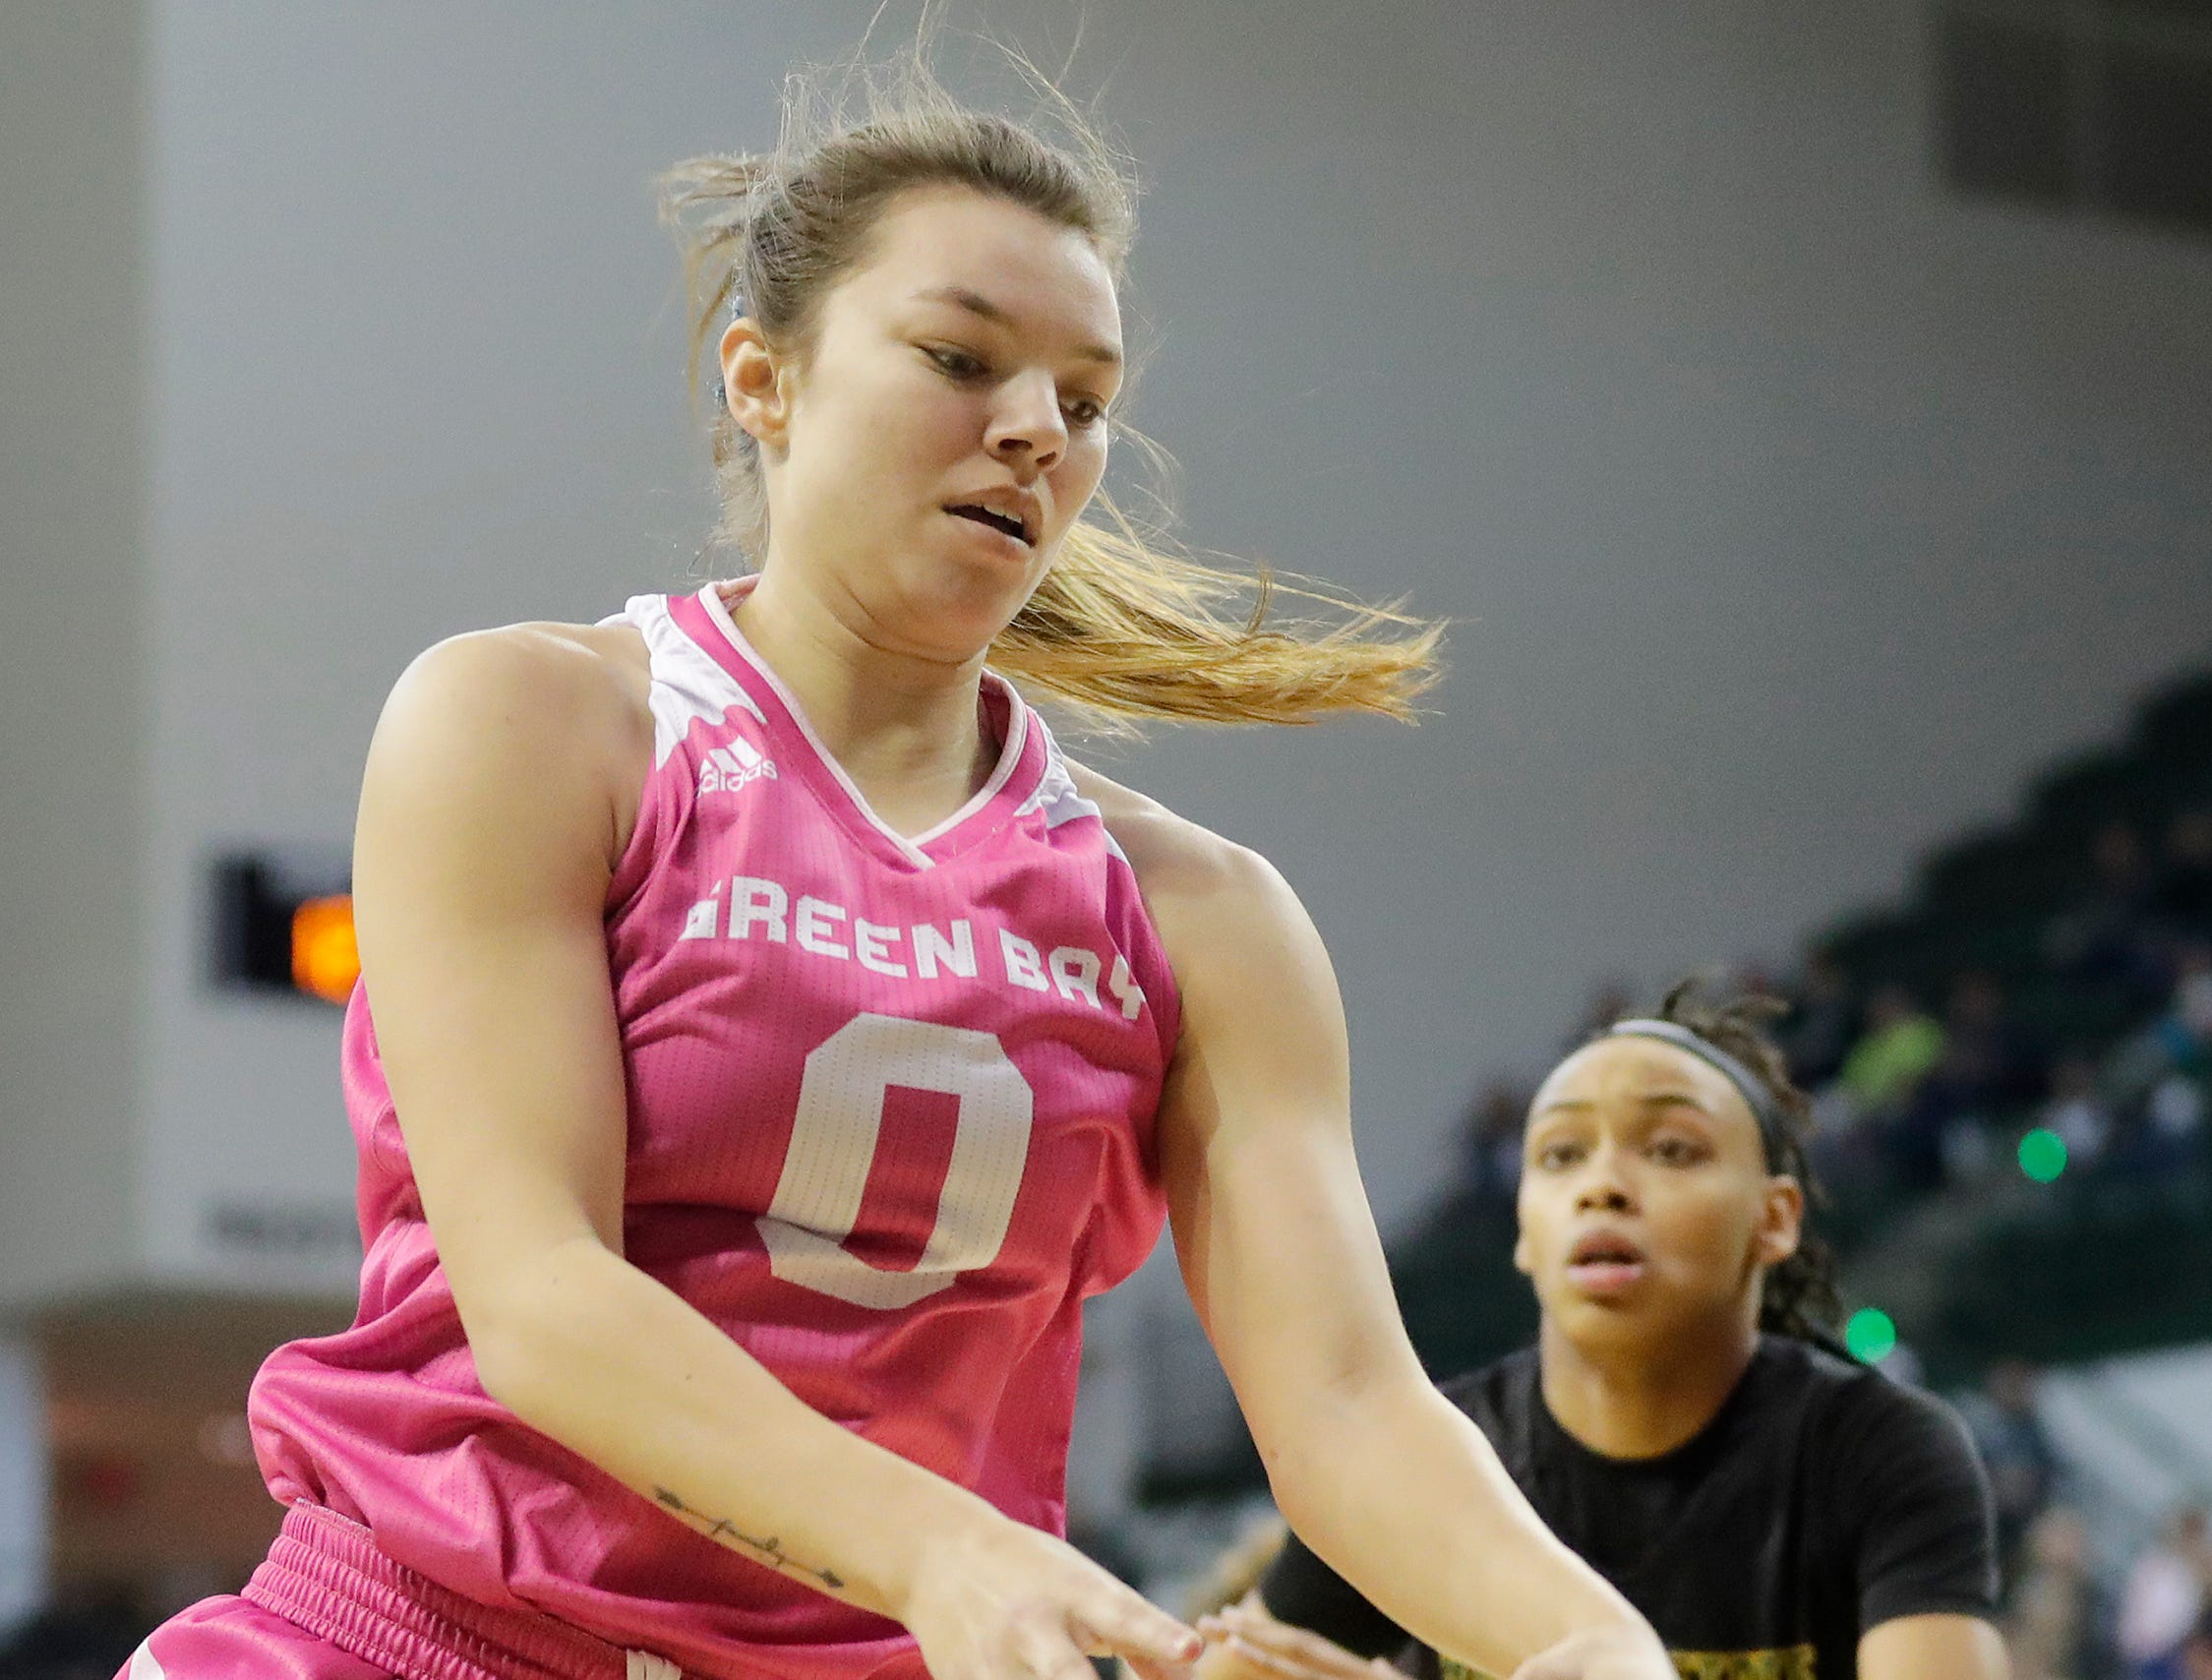 Green Bay Phoenix guard Hailey Oskey (0) receives a pass against the Wright State Raiders in a Horizon League women's basketball game at the Kress Center on Saturday, February 9, 2019 in Green Bay, Wis.